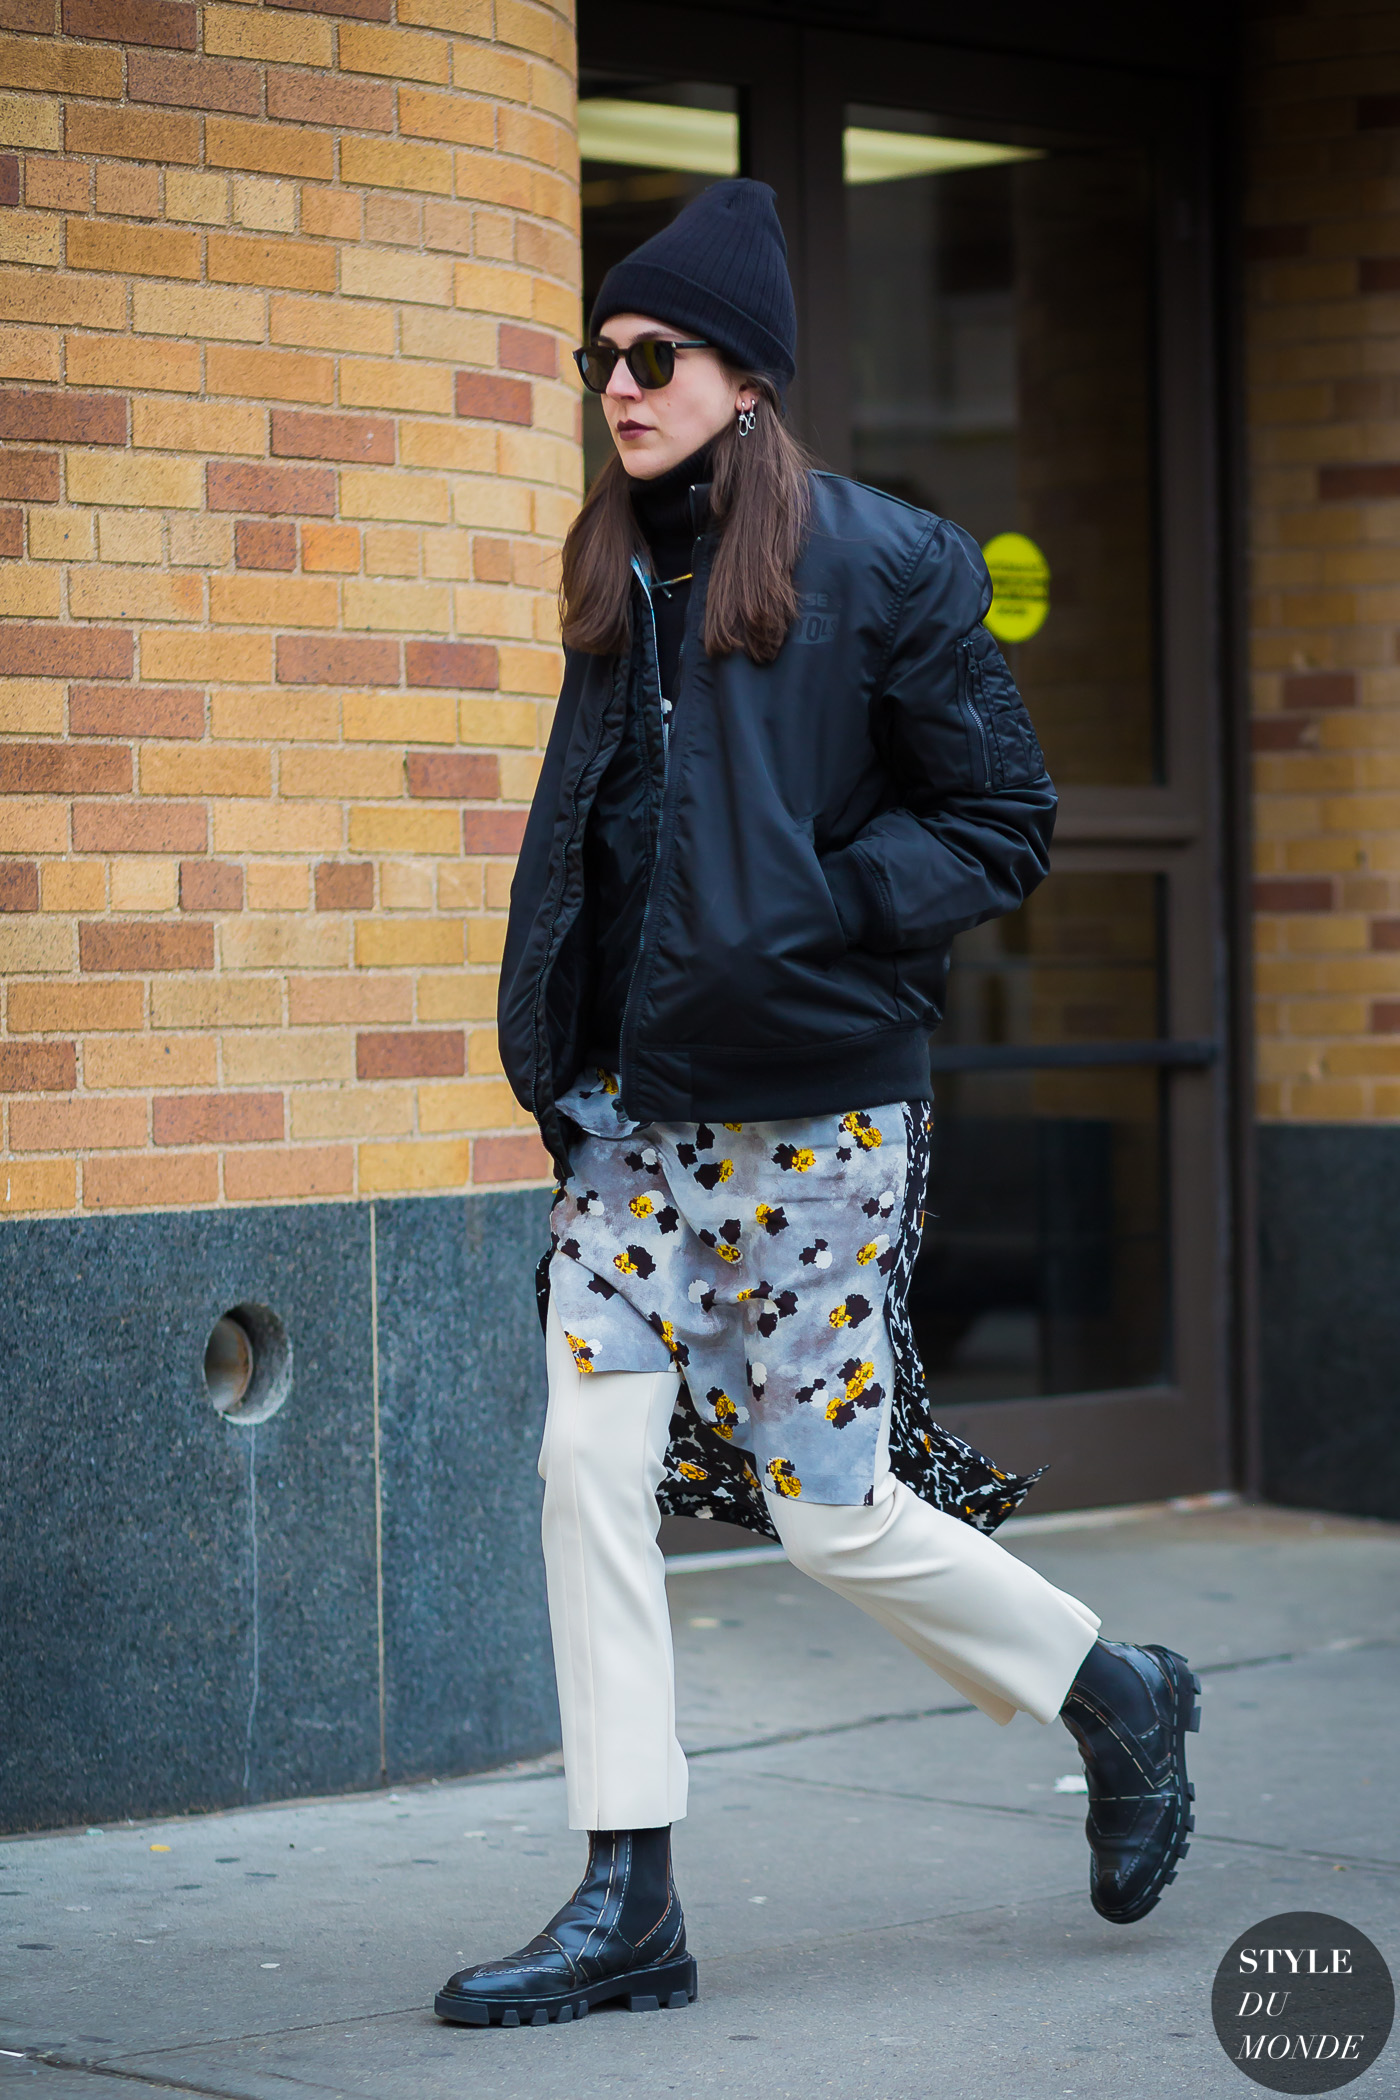 skirt-over-pants-by-styledumonde-street-style-fashion-photography